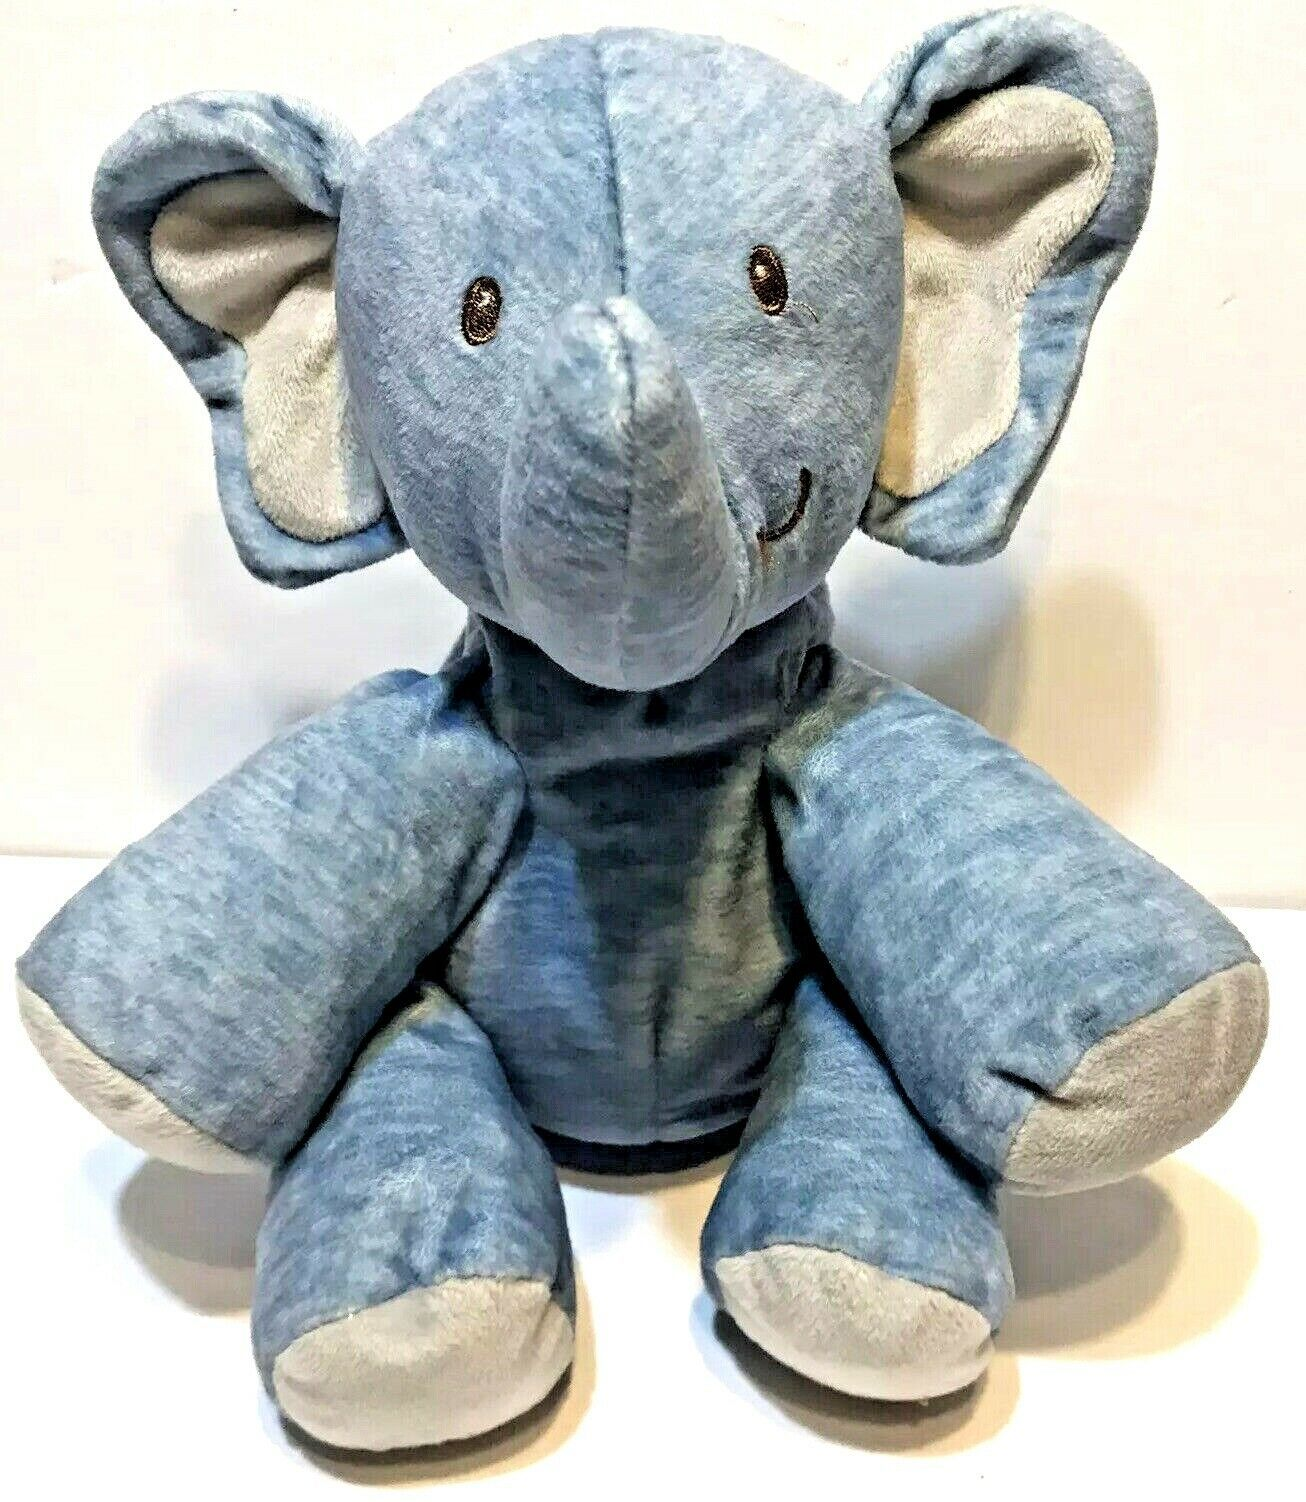 Primary image for Baby Gund Playful Pals Blue Elephant Floppy Ears Stuffed Animal Plush 4060057 8""